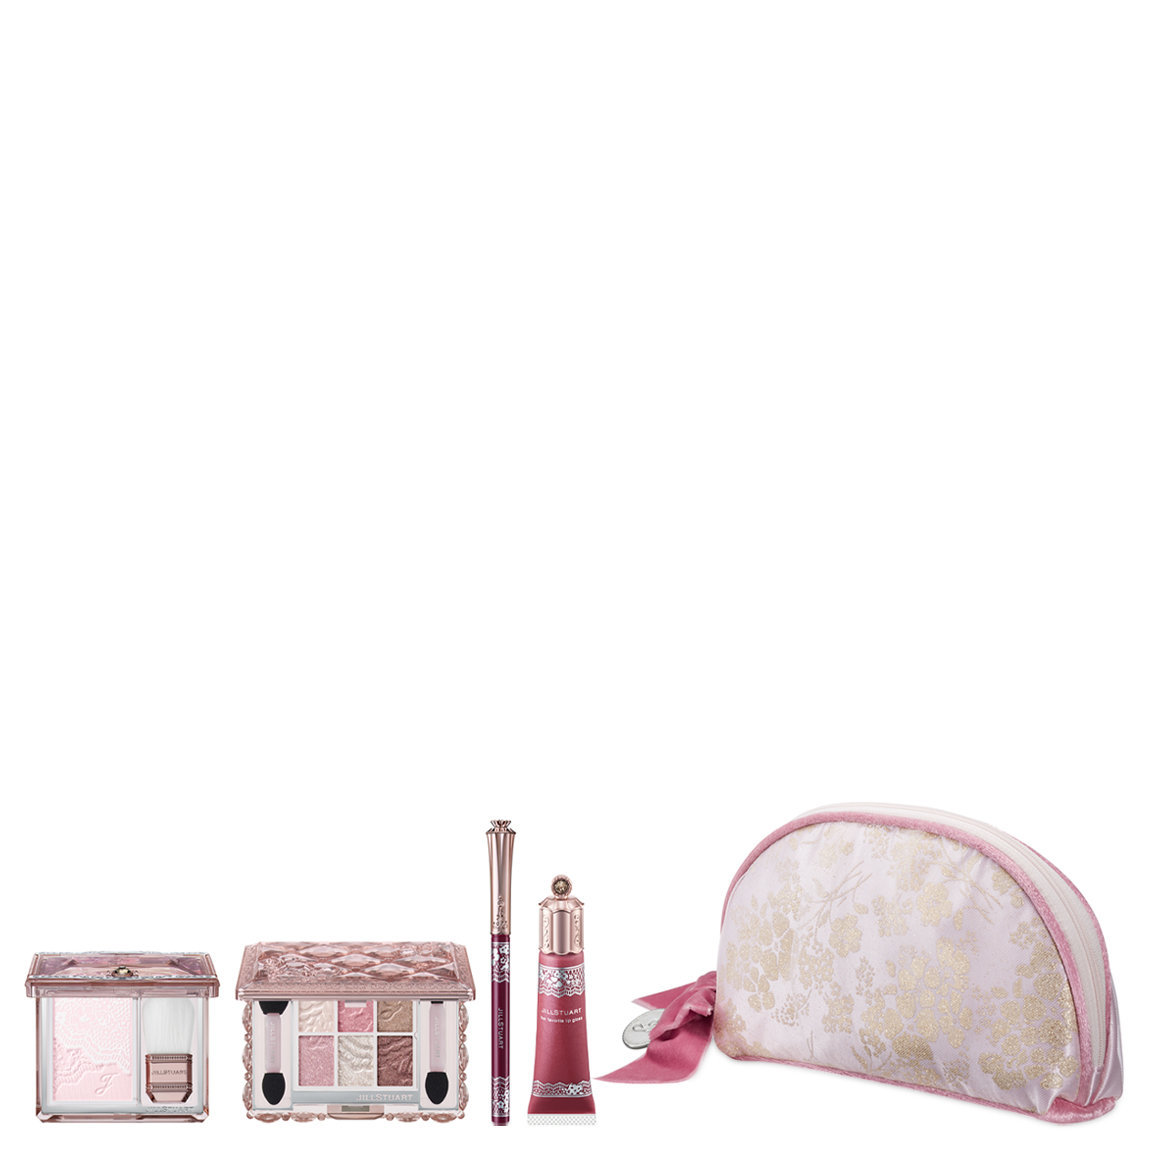 JILL STUART Beauty Urban Princess Collection Gift Set product swatch.